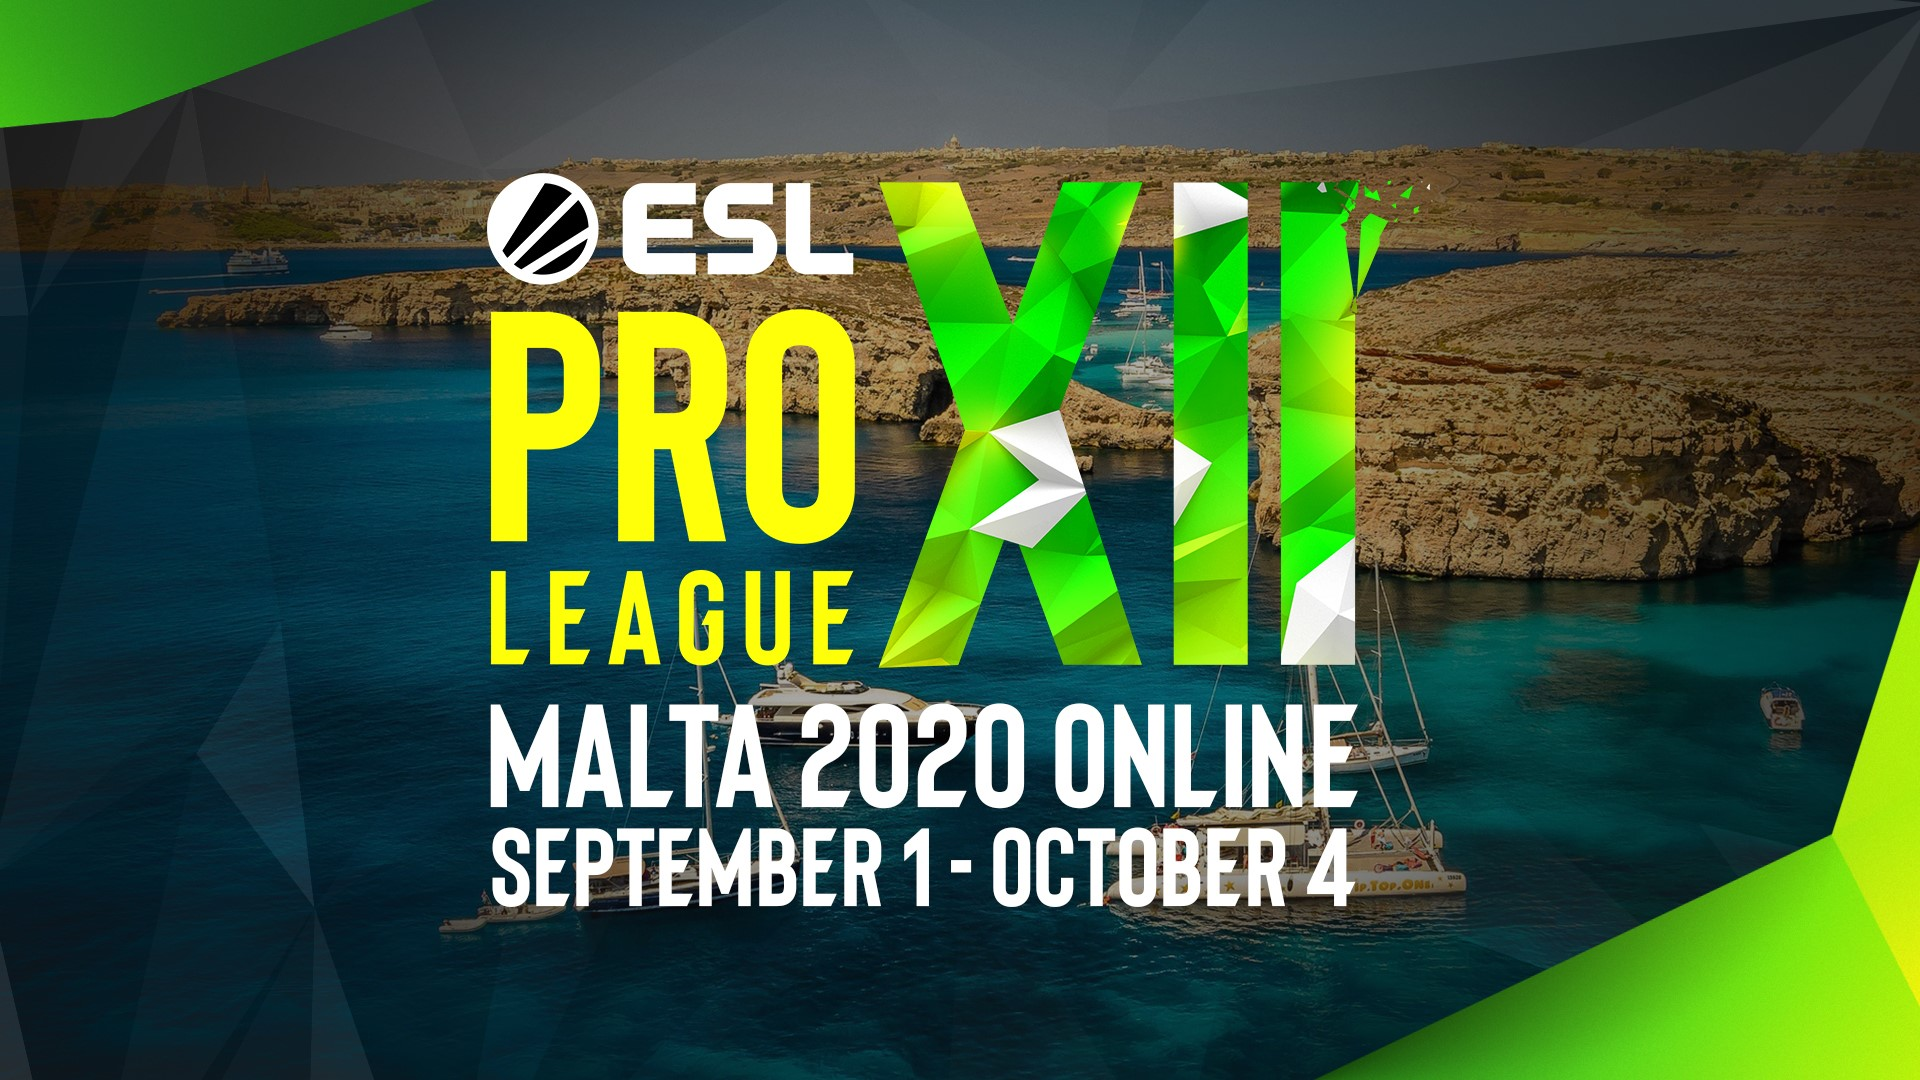 ESL and GamingMalta Extend Partnership Agreement After Hosting Most Successful ESL Pro League Season To Date